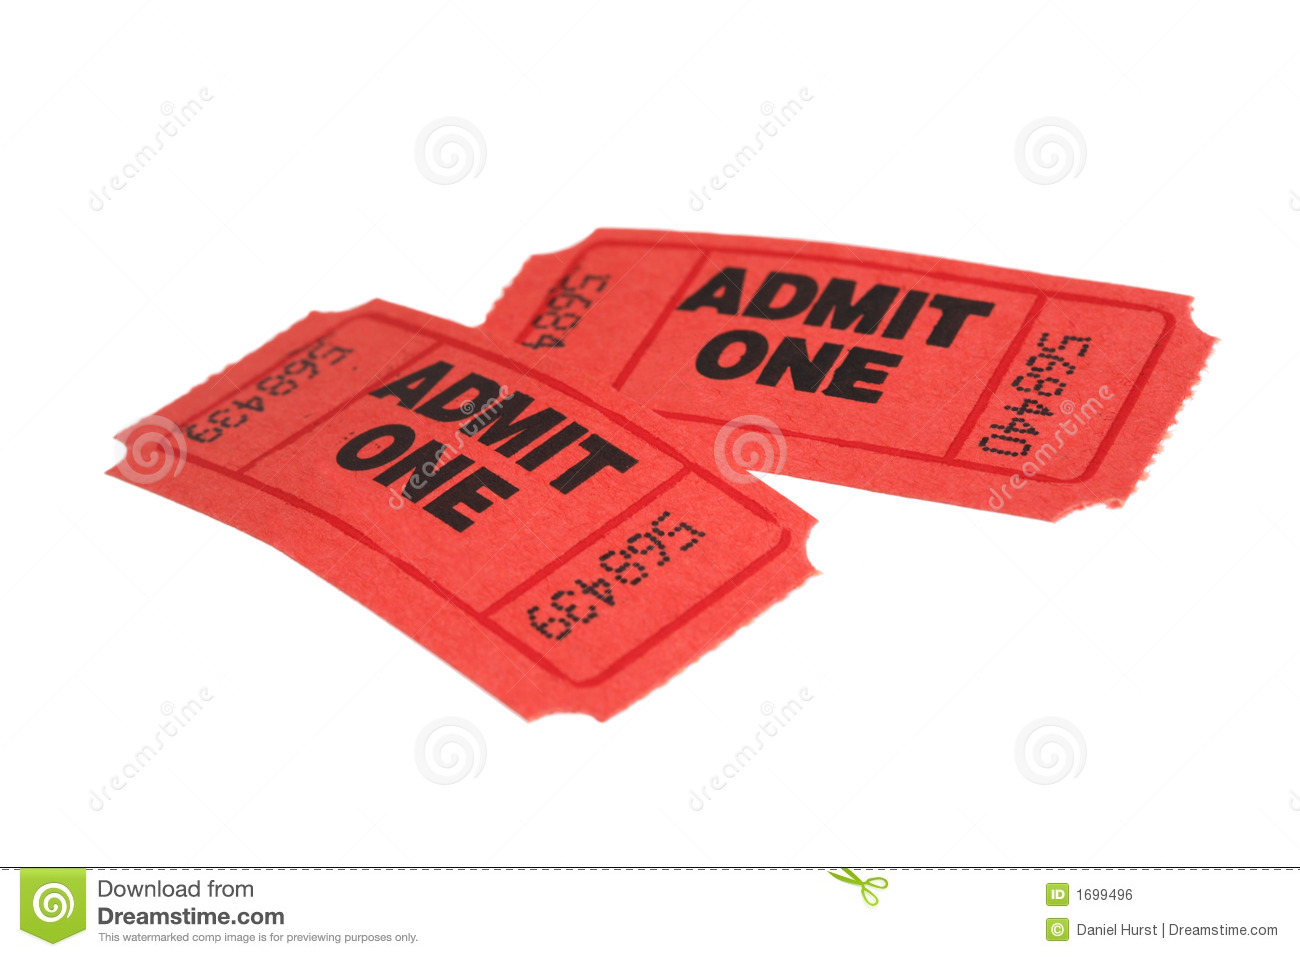 a pair of tickets sparknotes